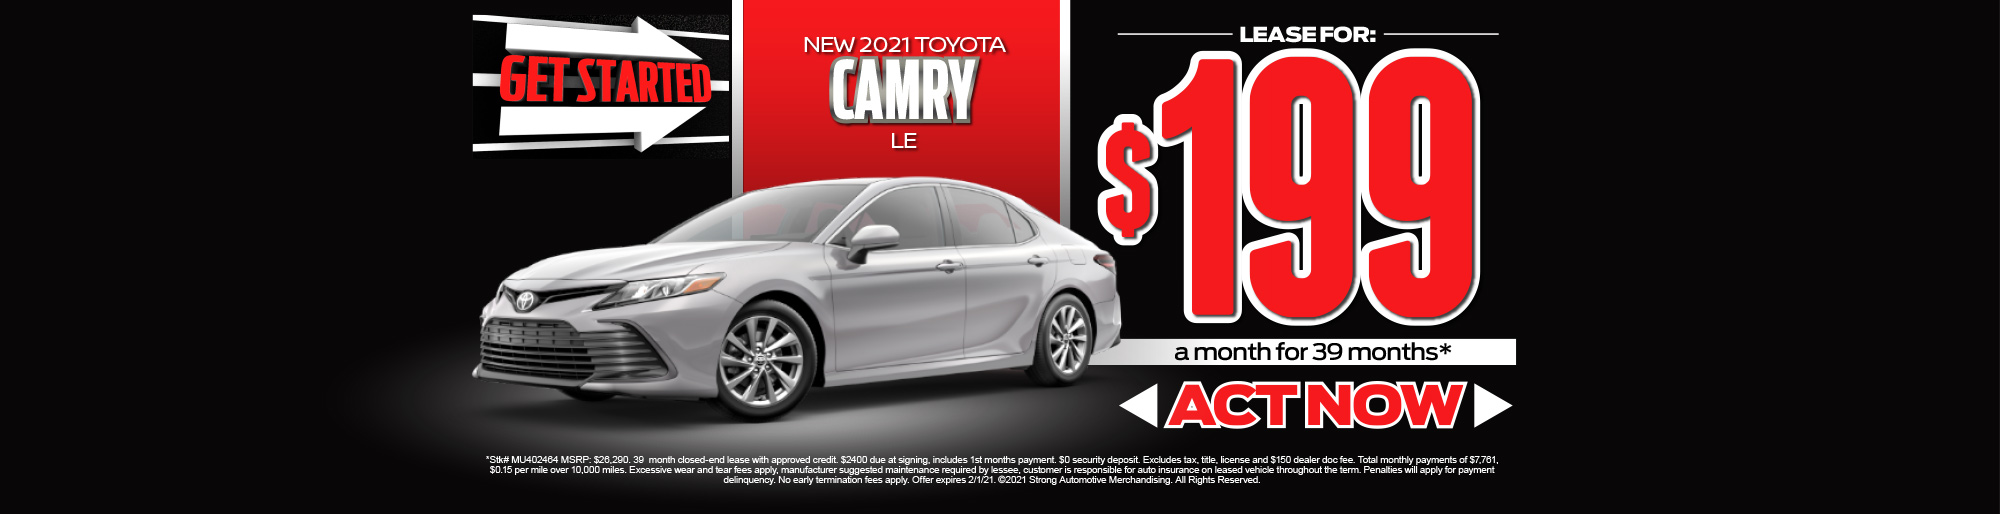 LEASE A NEW 2021 CAMRY LE FOR $199/MO* - ACT NOW